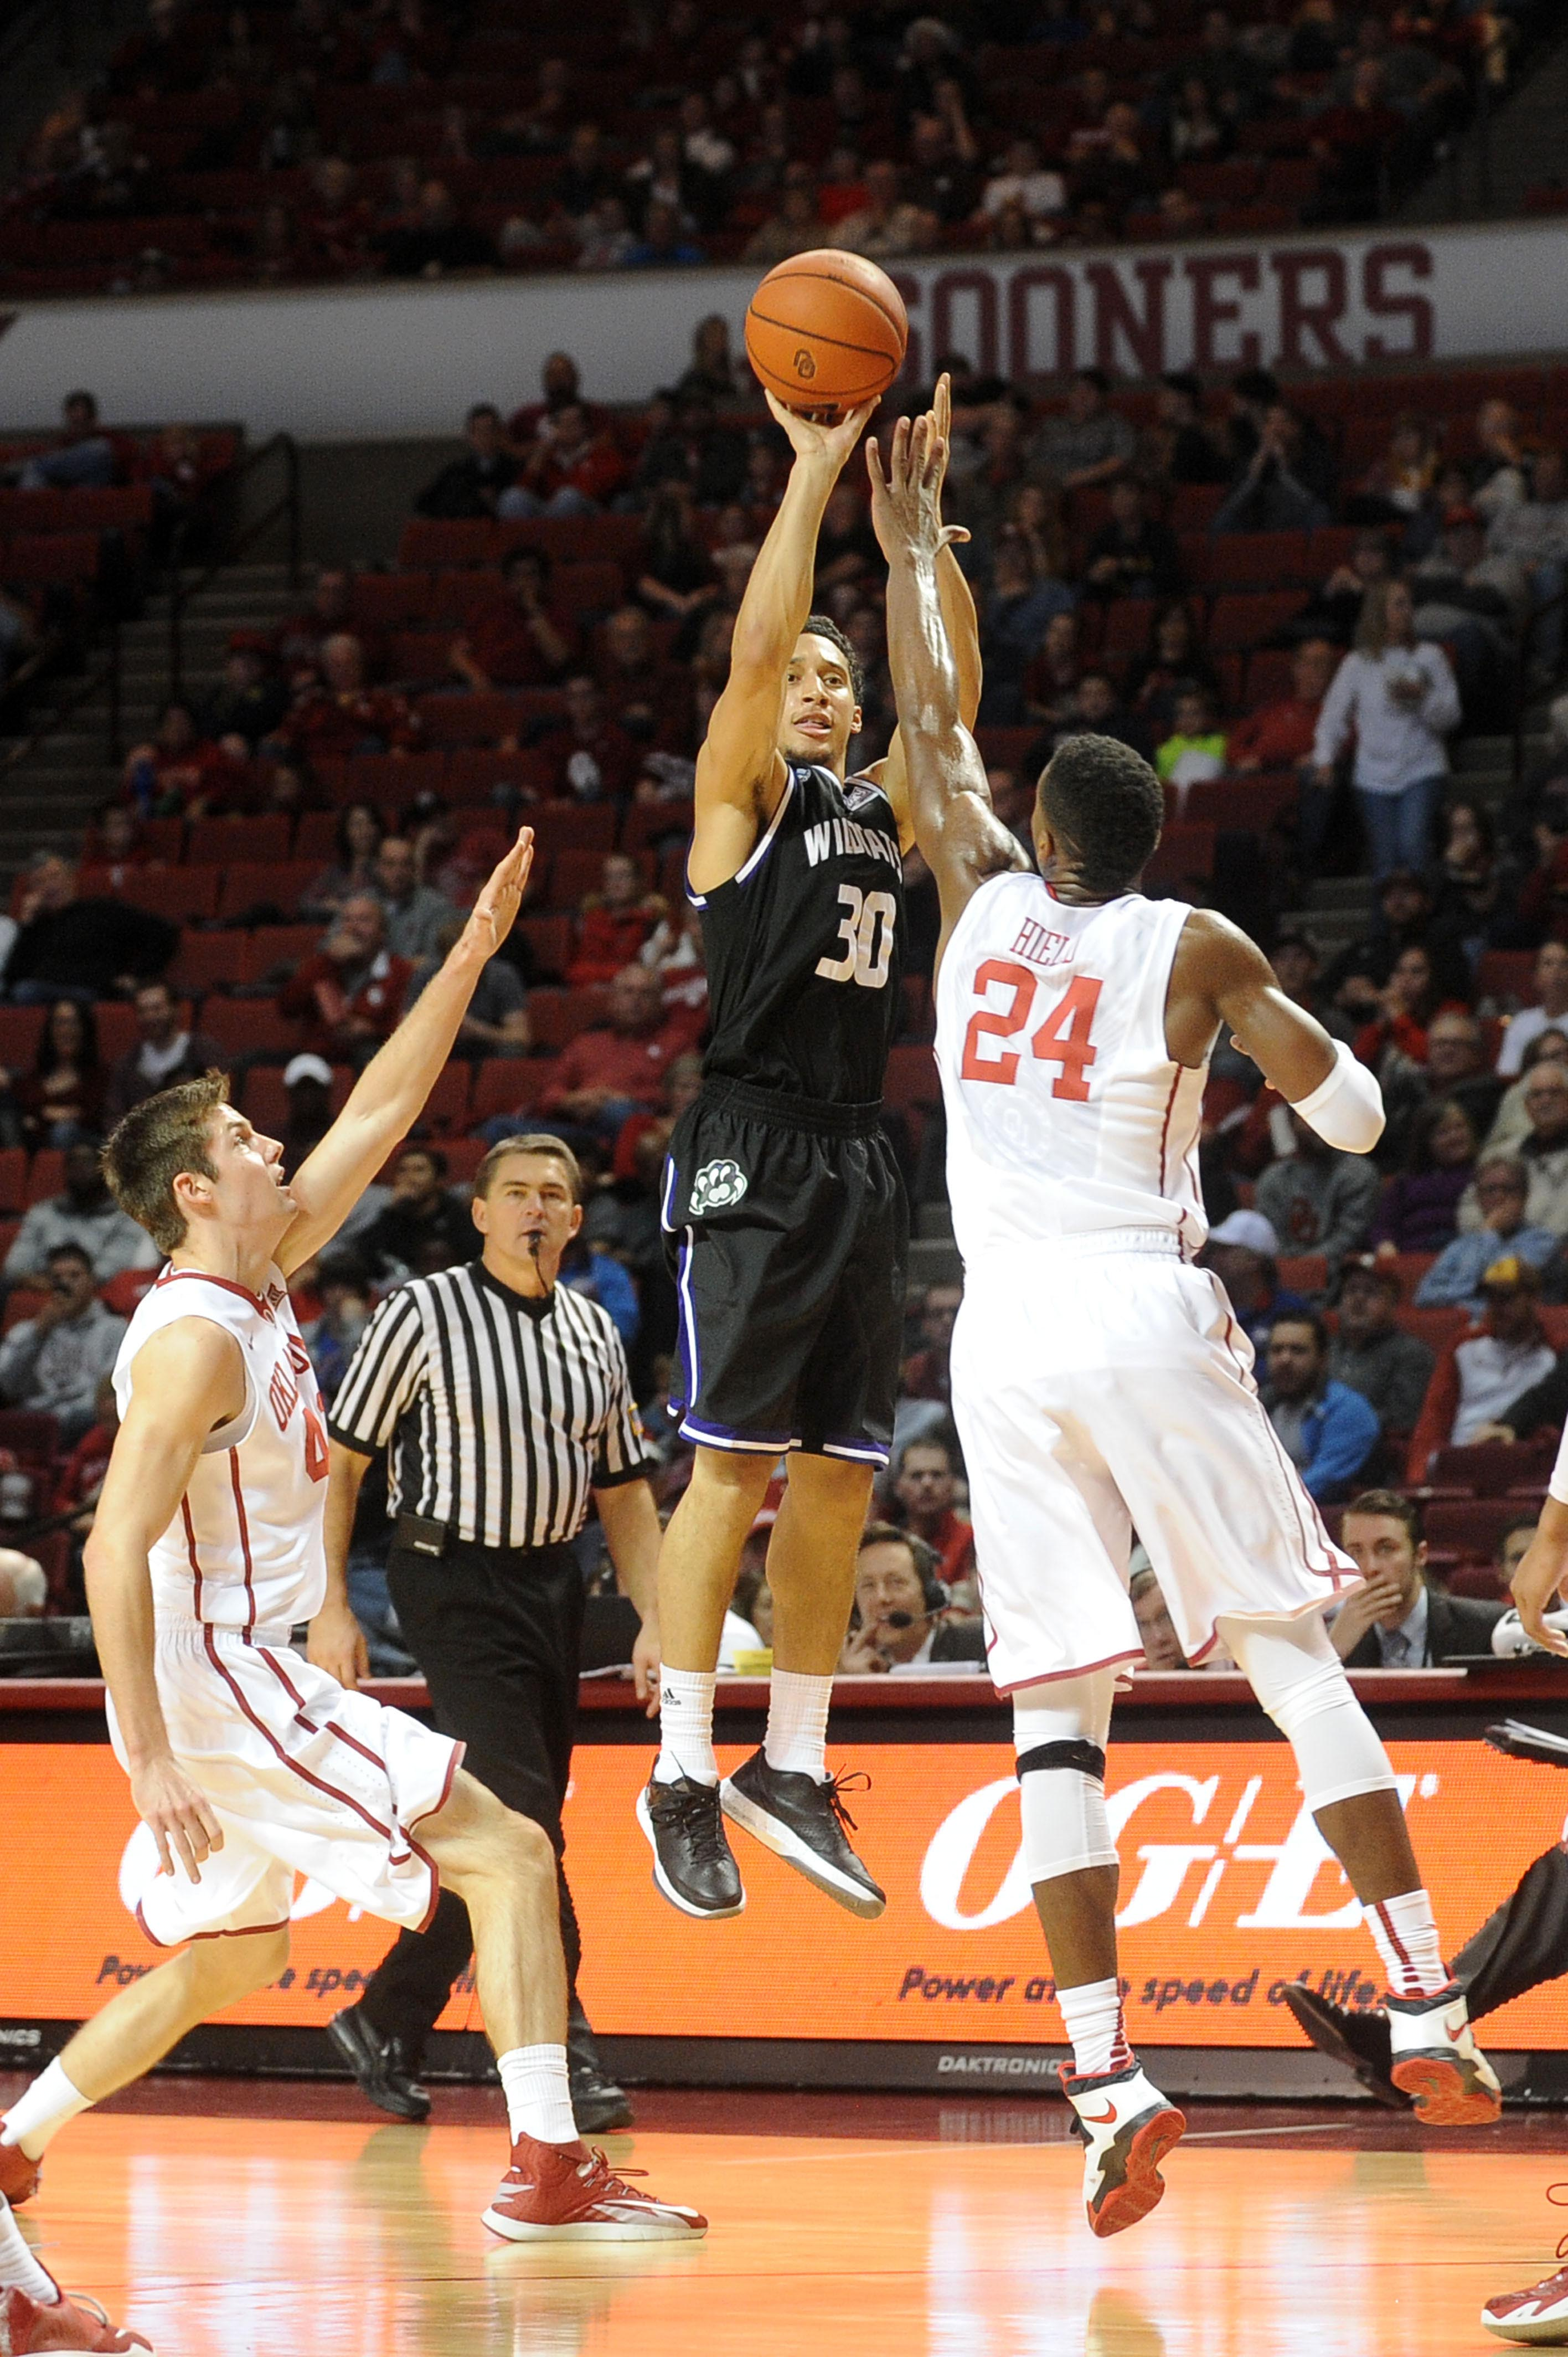 This is Jeremy Senglin. We don't want to let him do this.